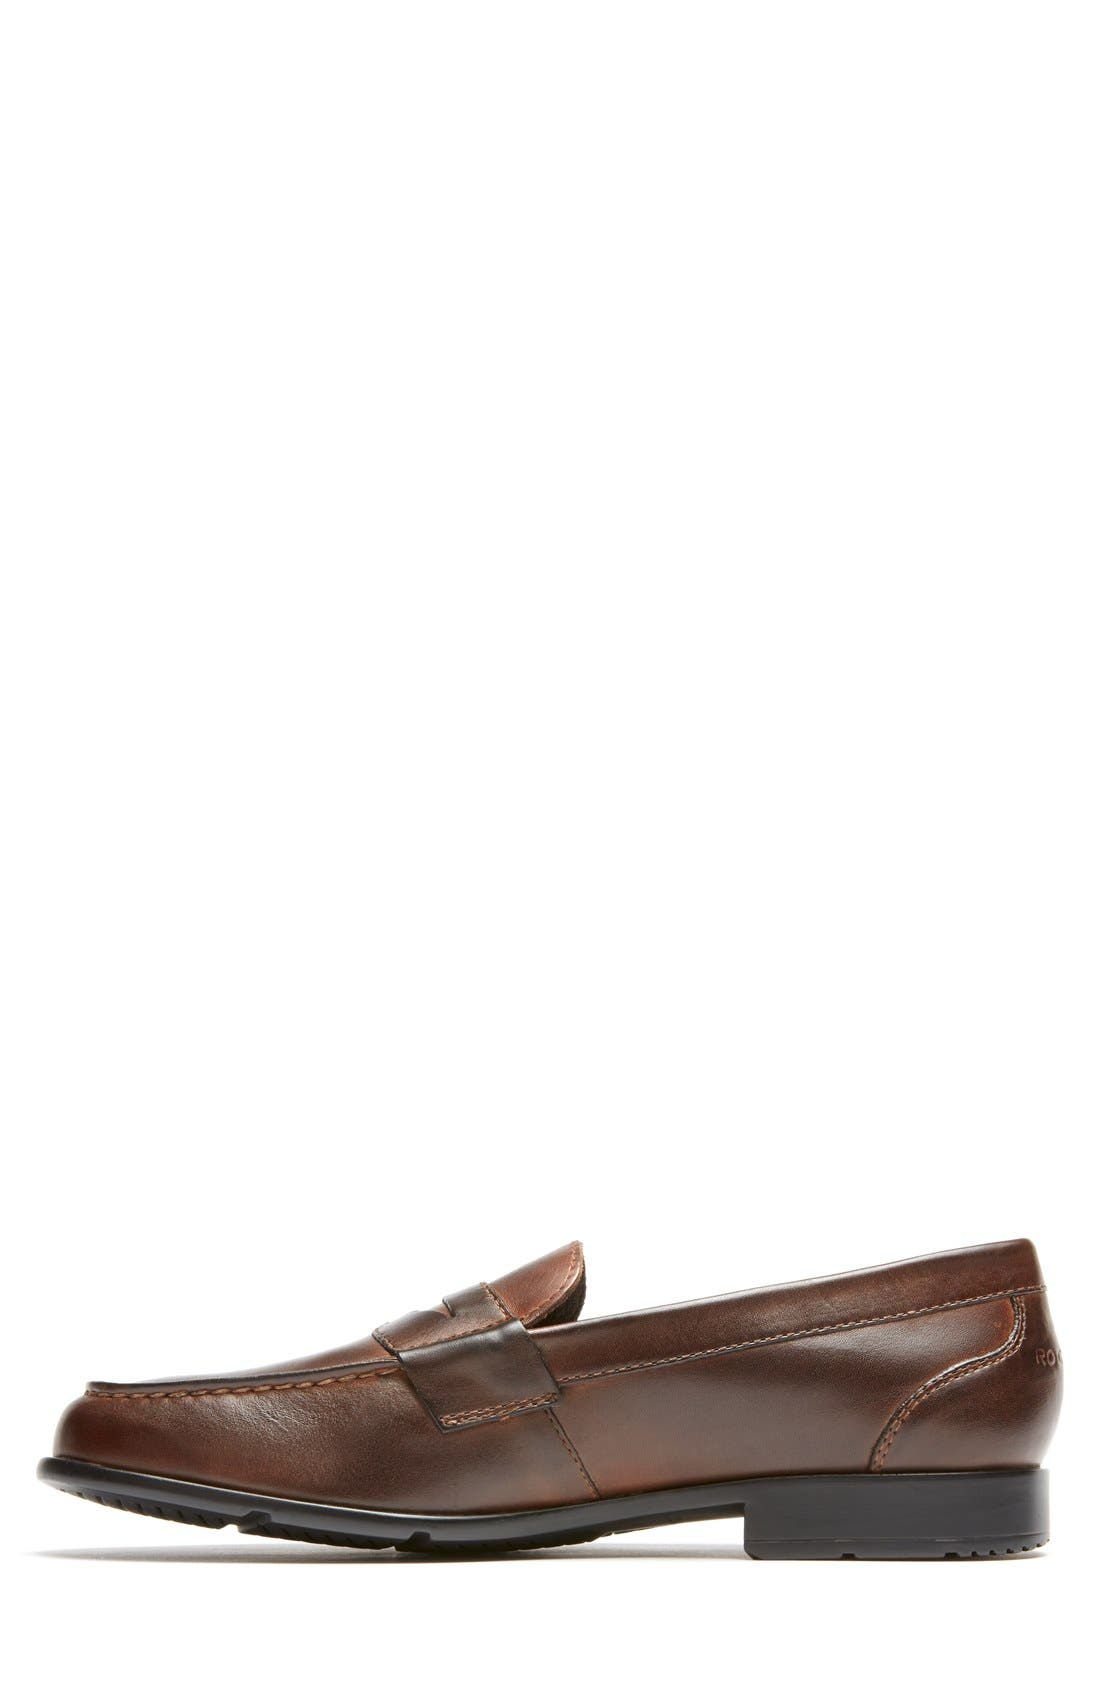 Leather Penny Loafer,                             Alternate thumbnail 2, color,                             Brown